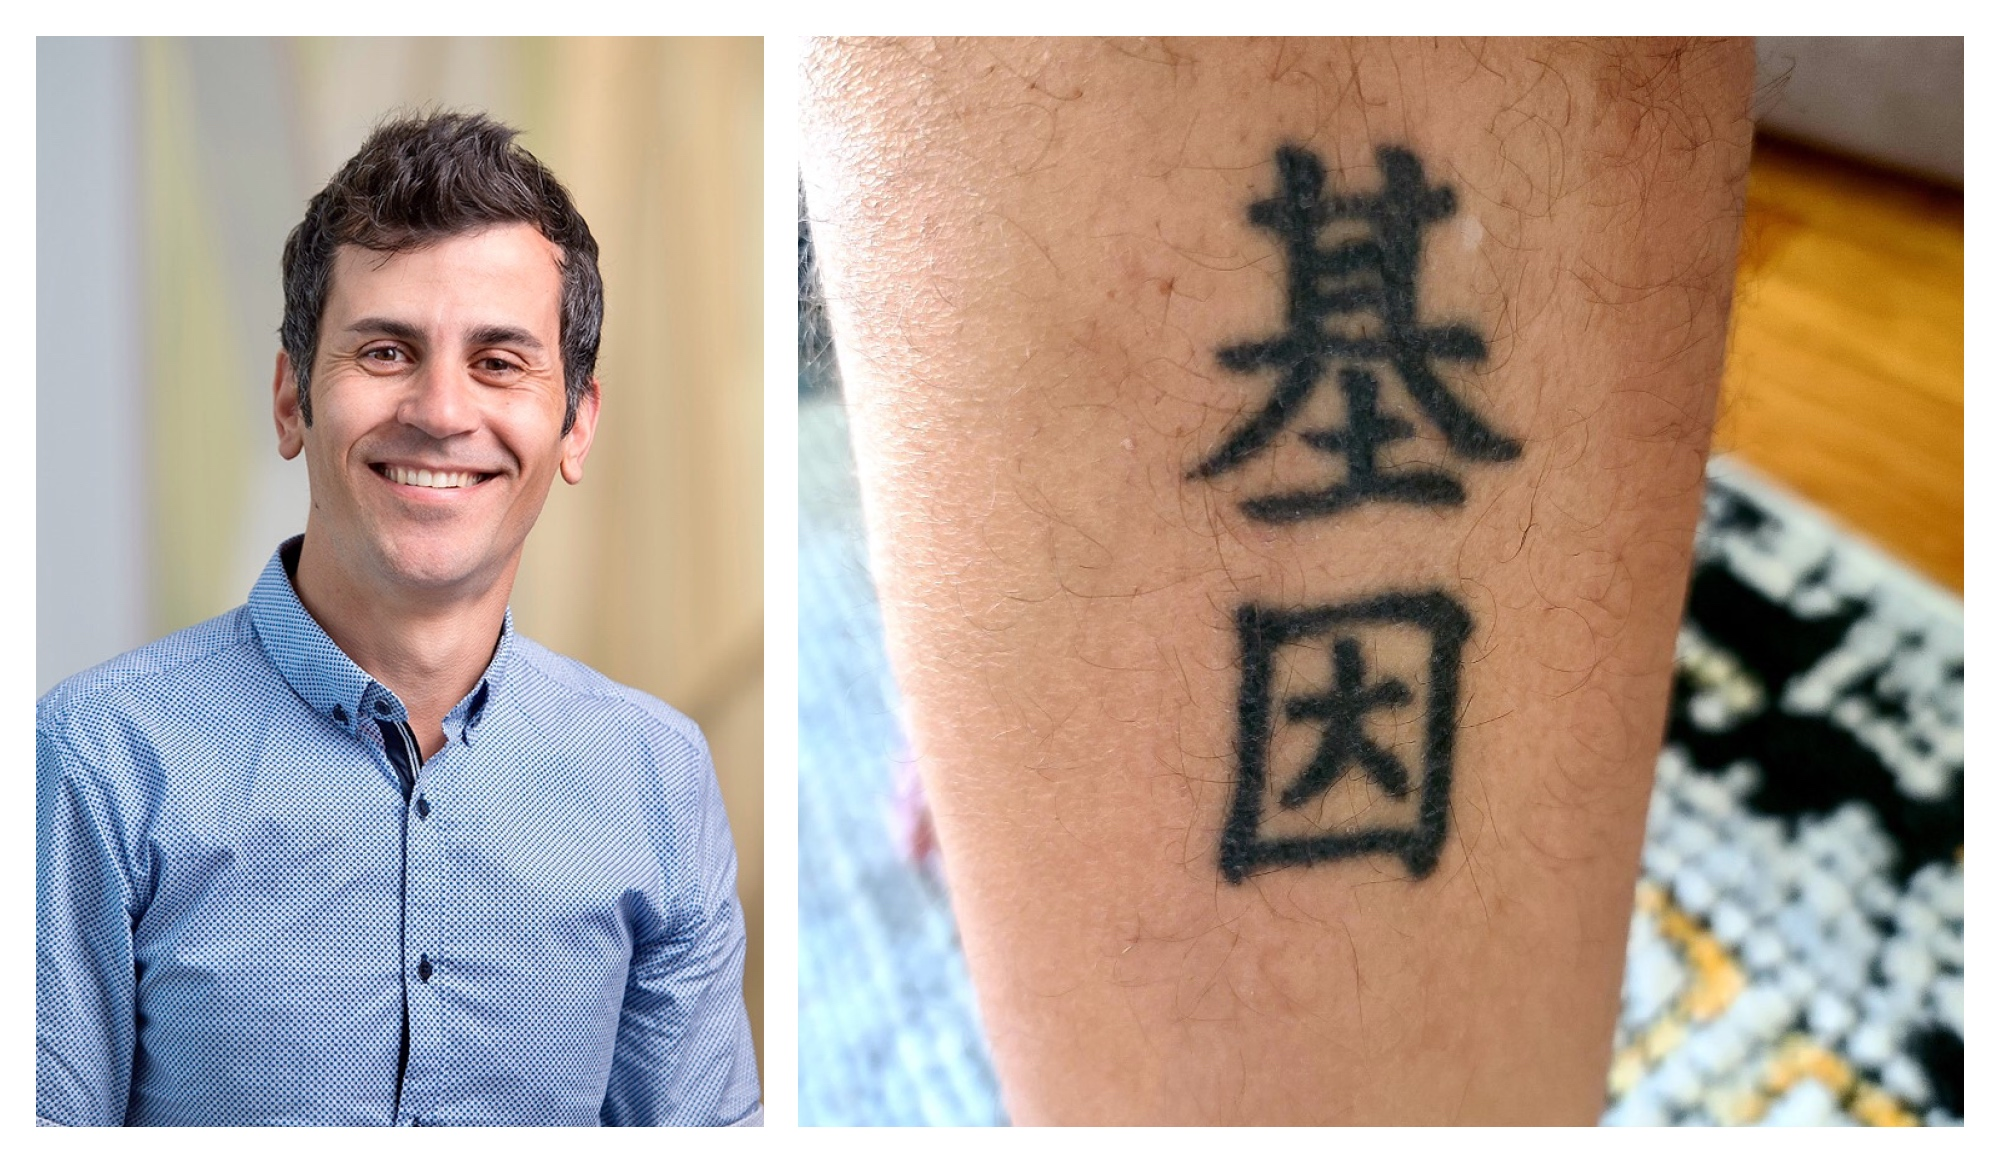 Photo collage of Luciano Martelotto and his tattoo